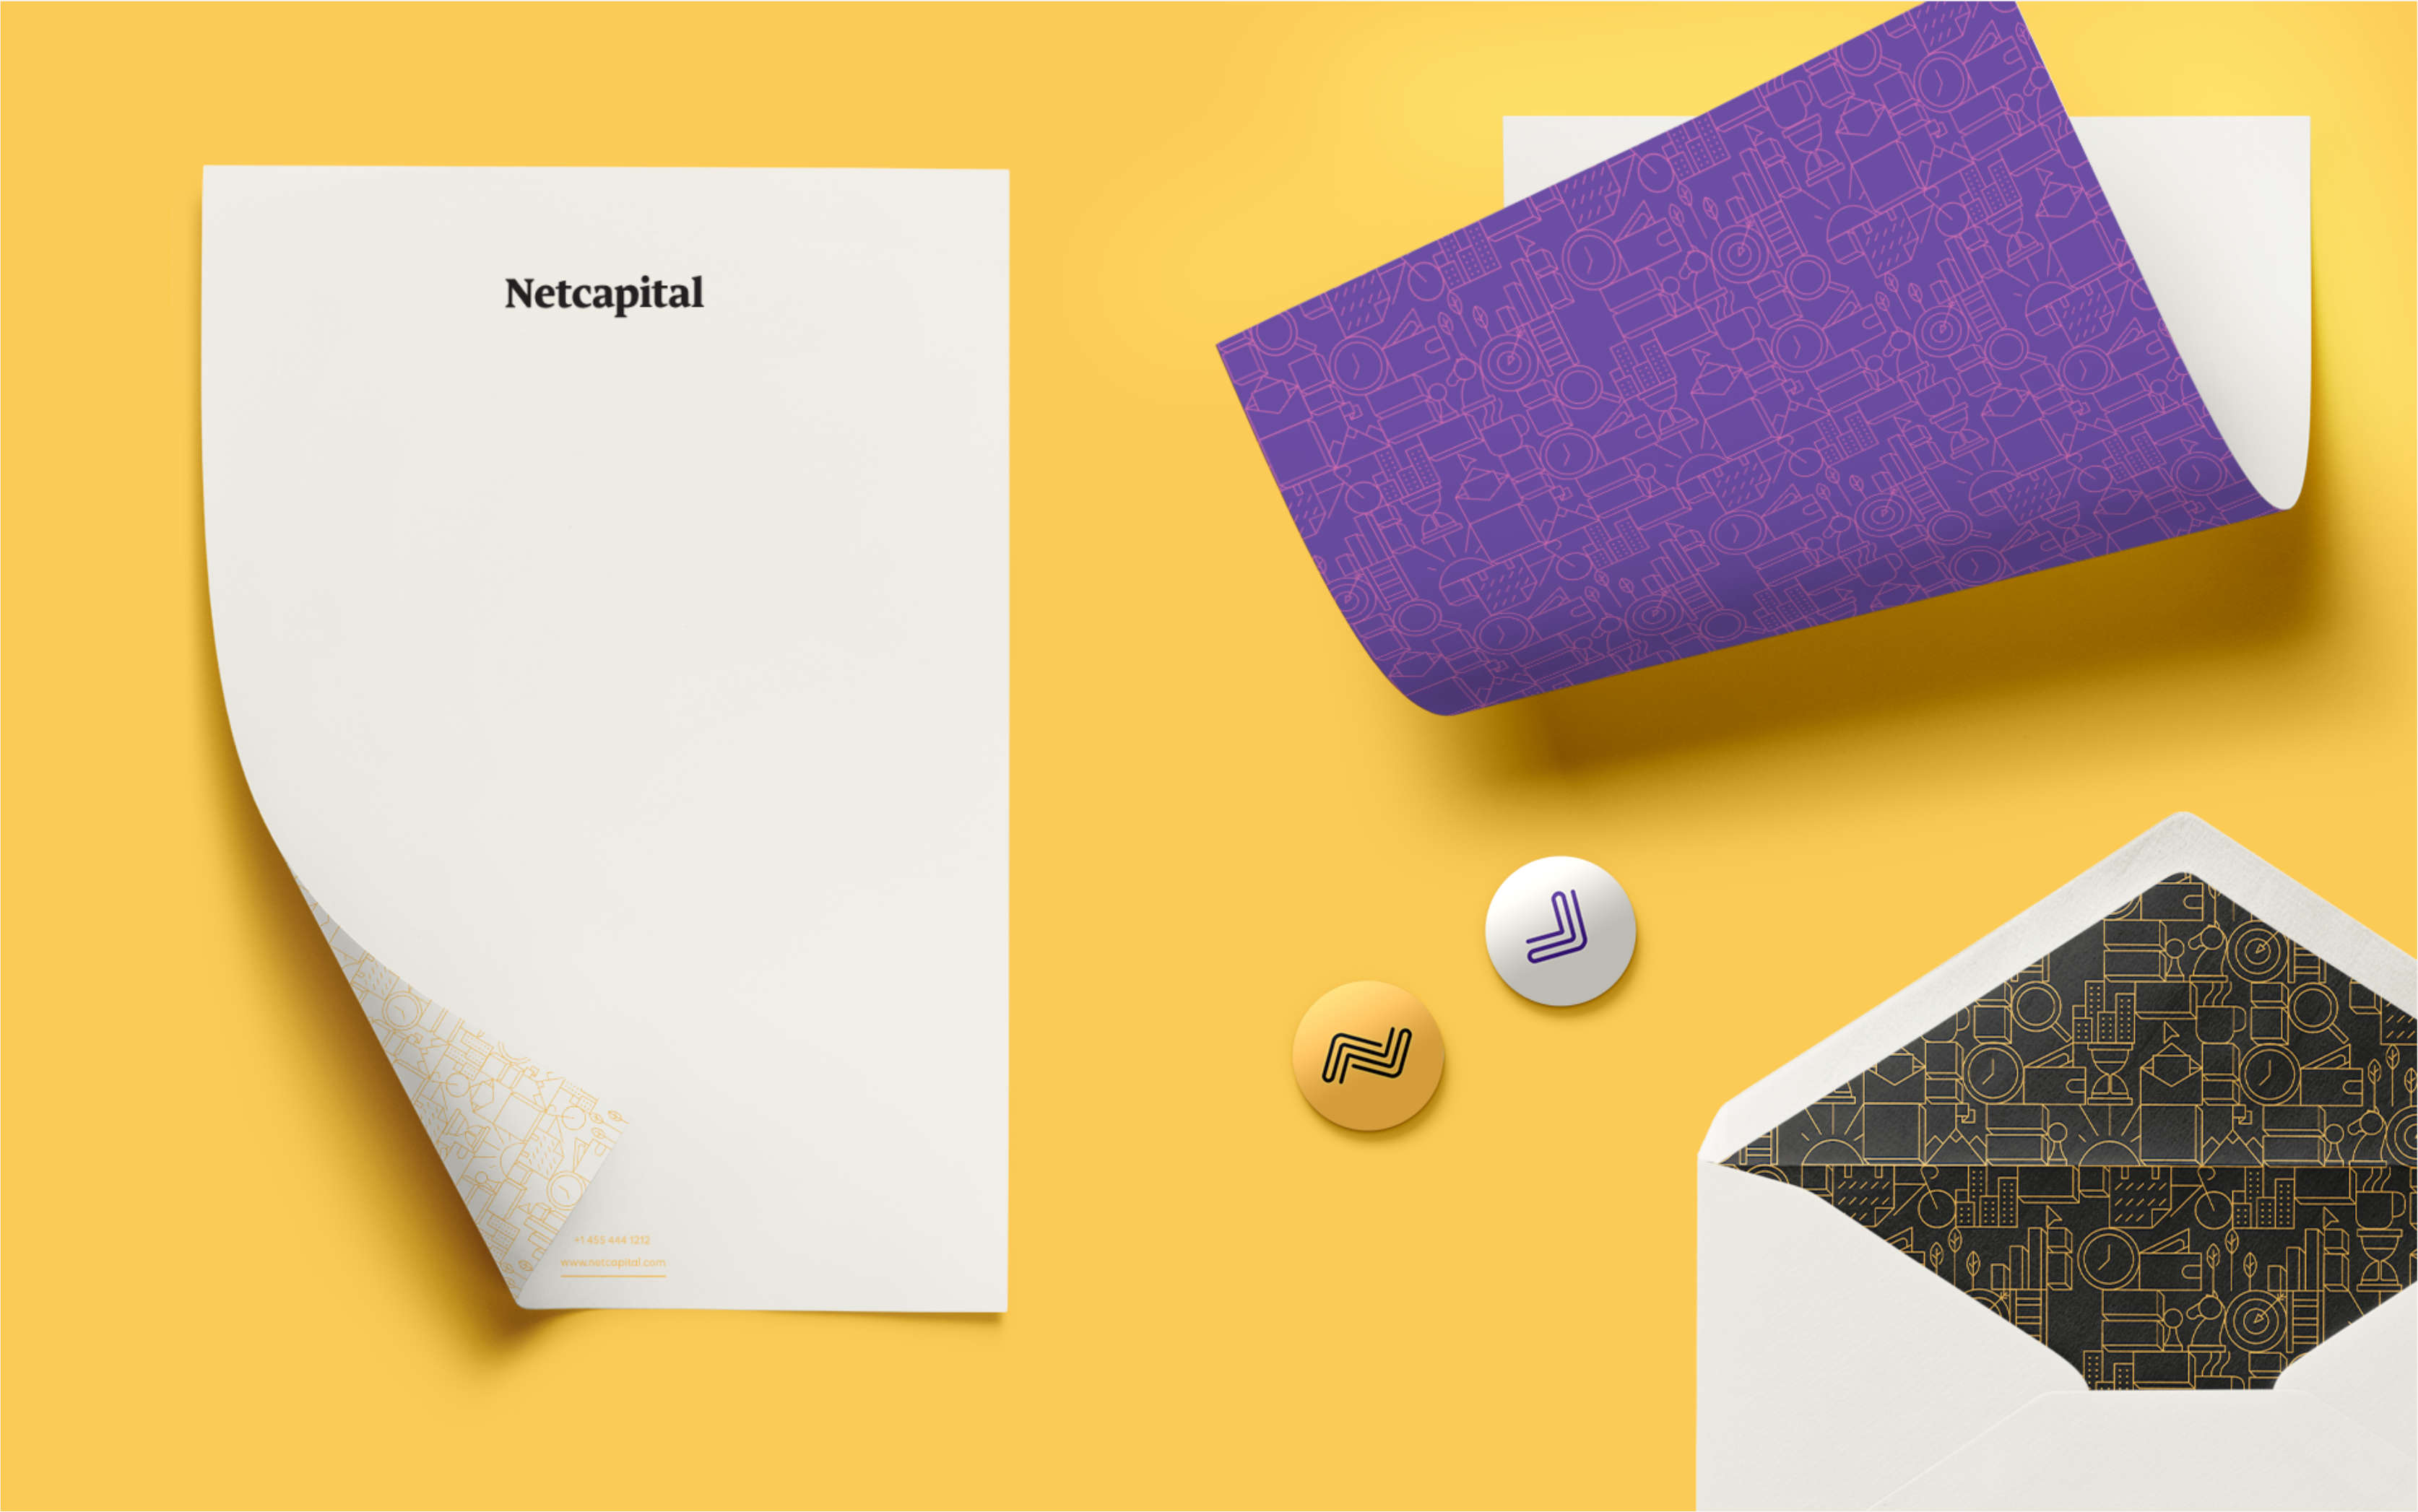 Netcapital Branding Collateral Design